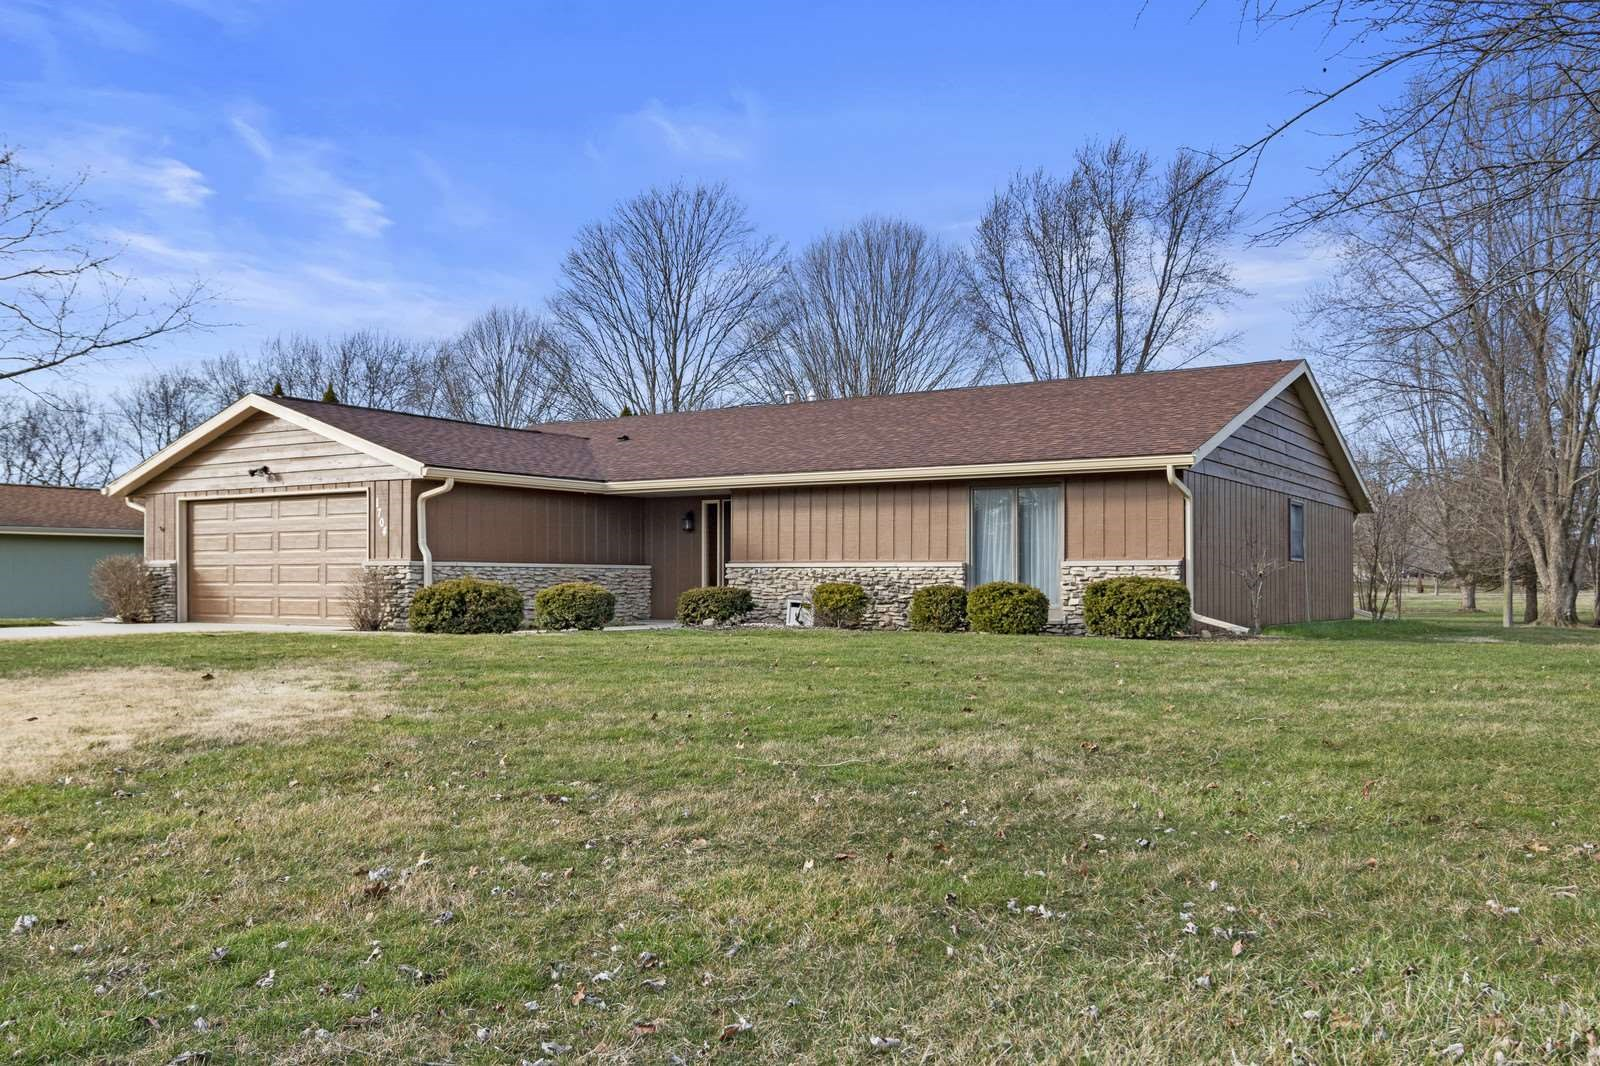 Home for Sale Muncie Indiana